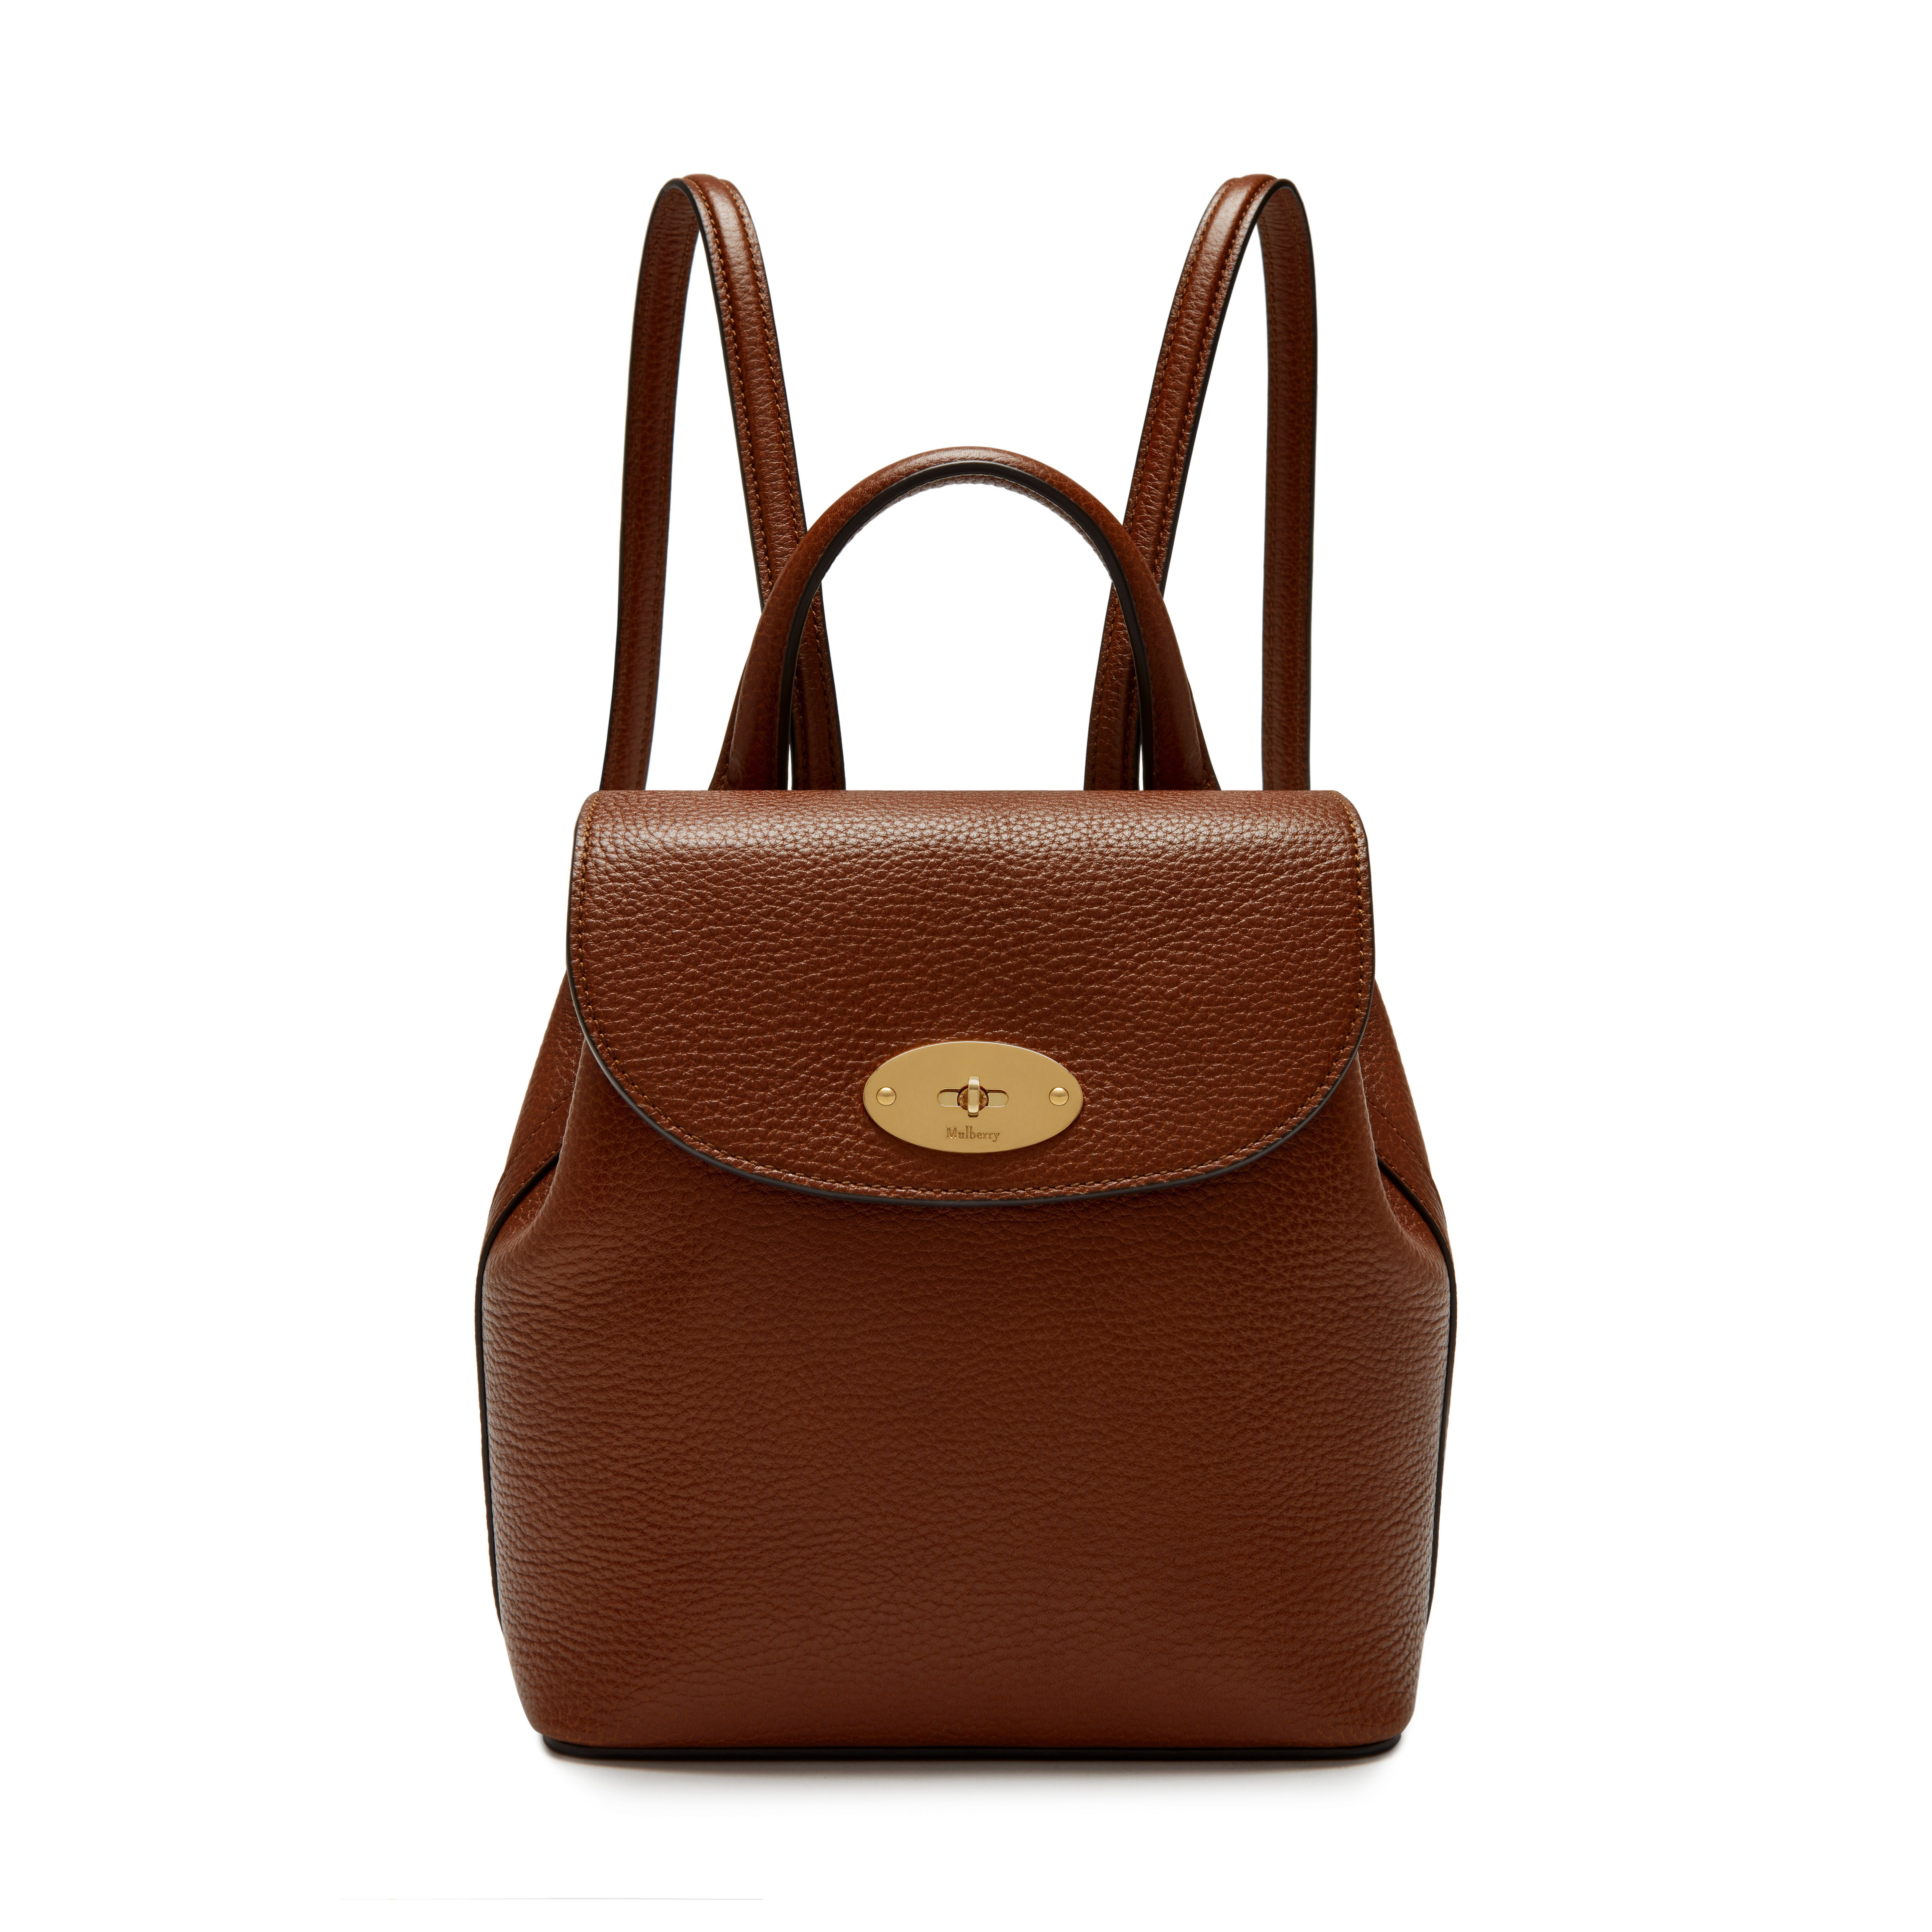 5074f46eb2fd Shop the Oak leather Mini Bayswater Backpack on Mulberry.com. Hands-free and  ready to go - on a miniature scale. This new Mini version of the practical  ...